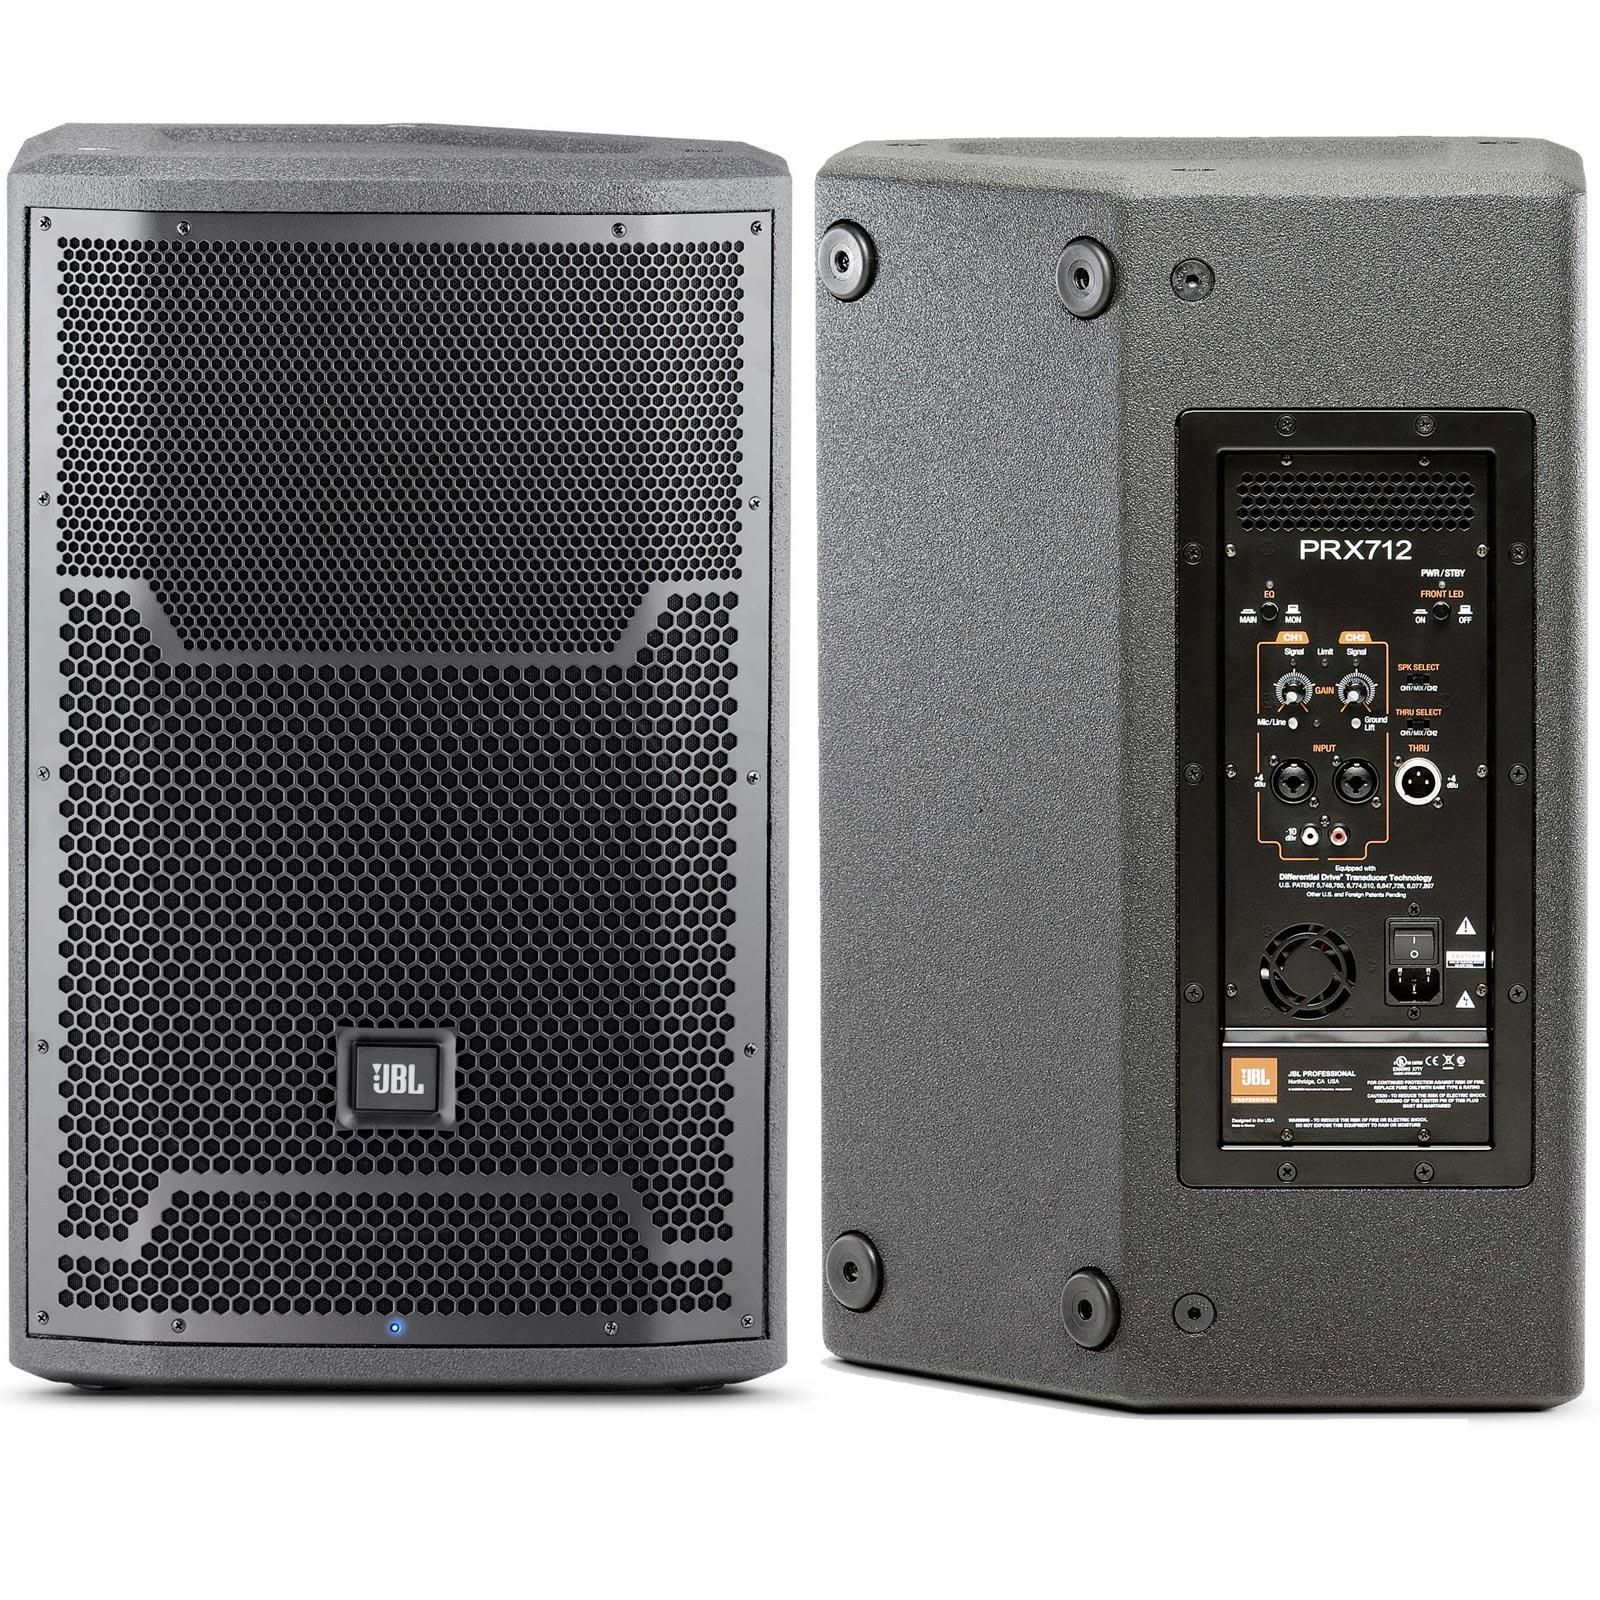 Jbl Prx712 Jbl Bluetooth Speakers Dj Equipment